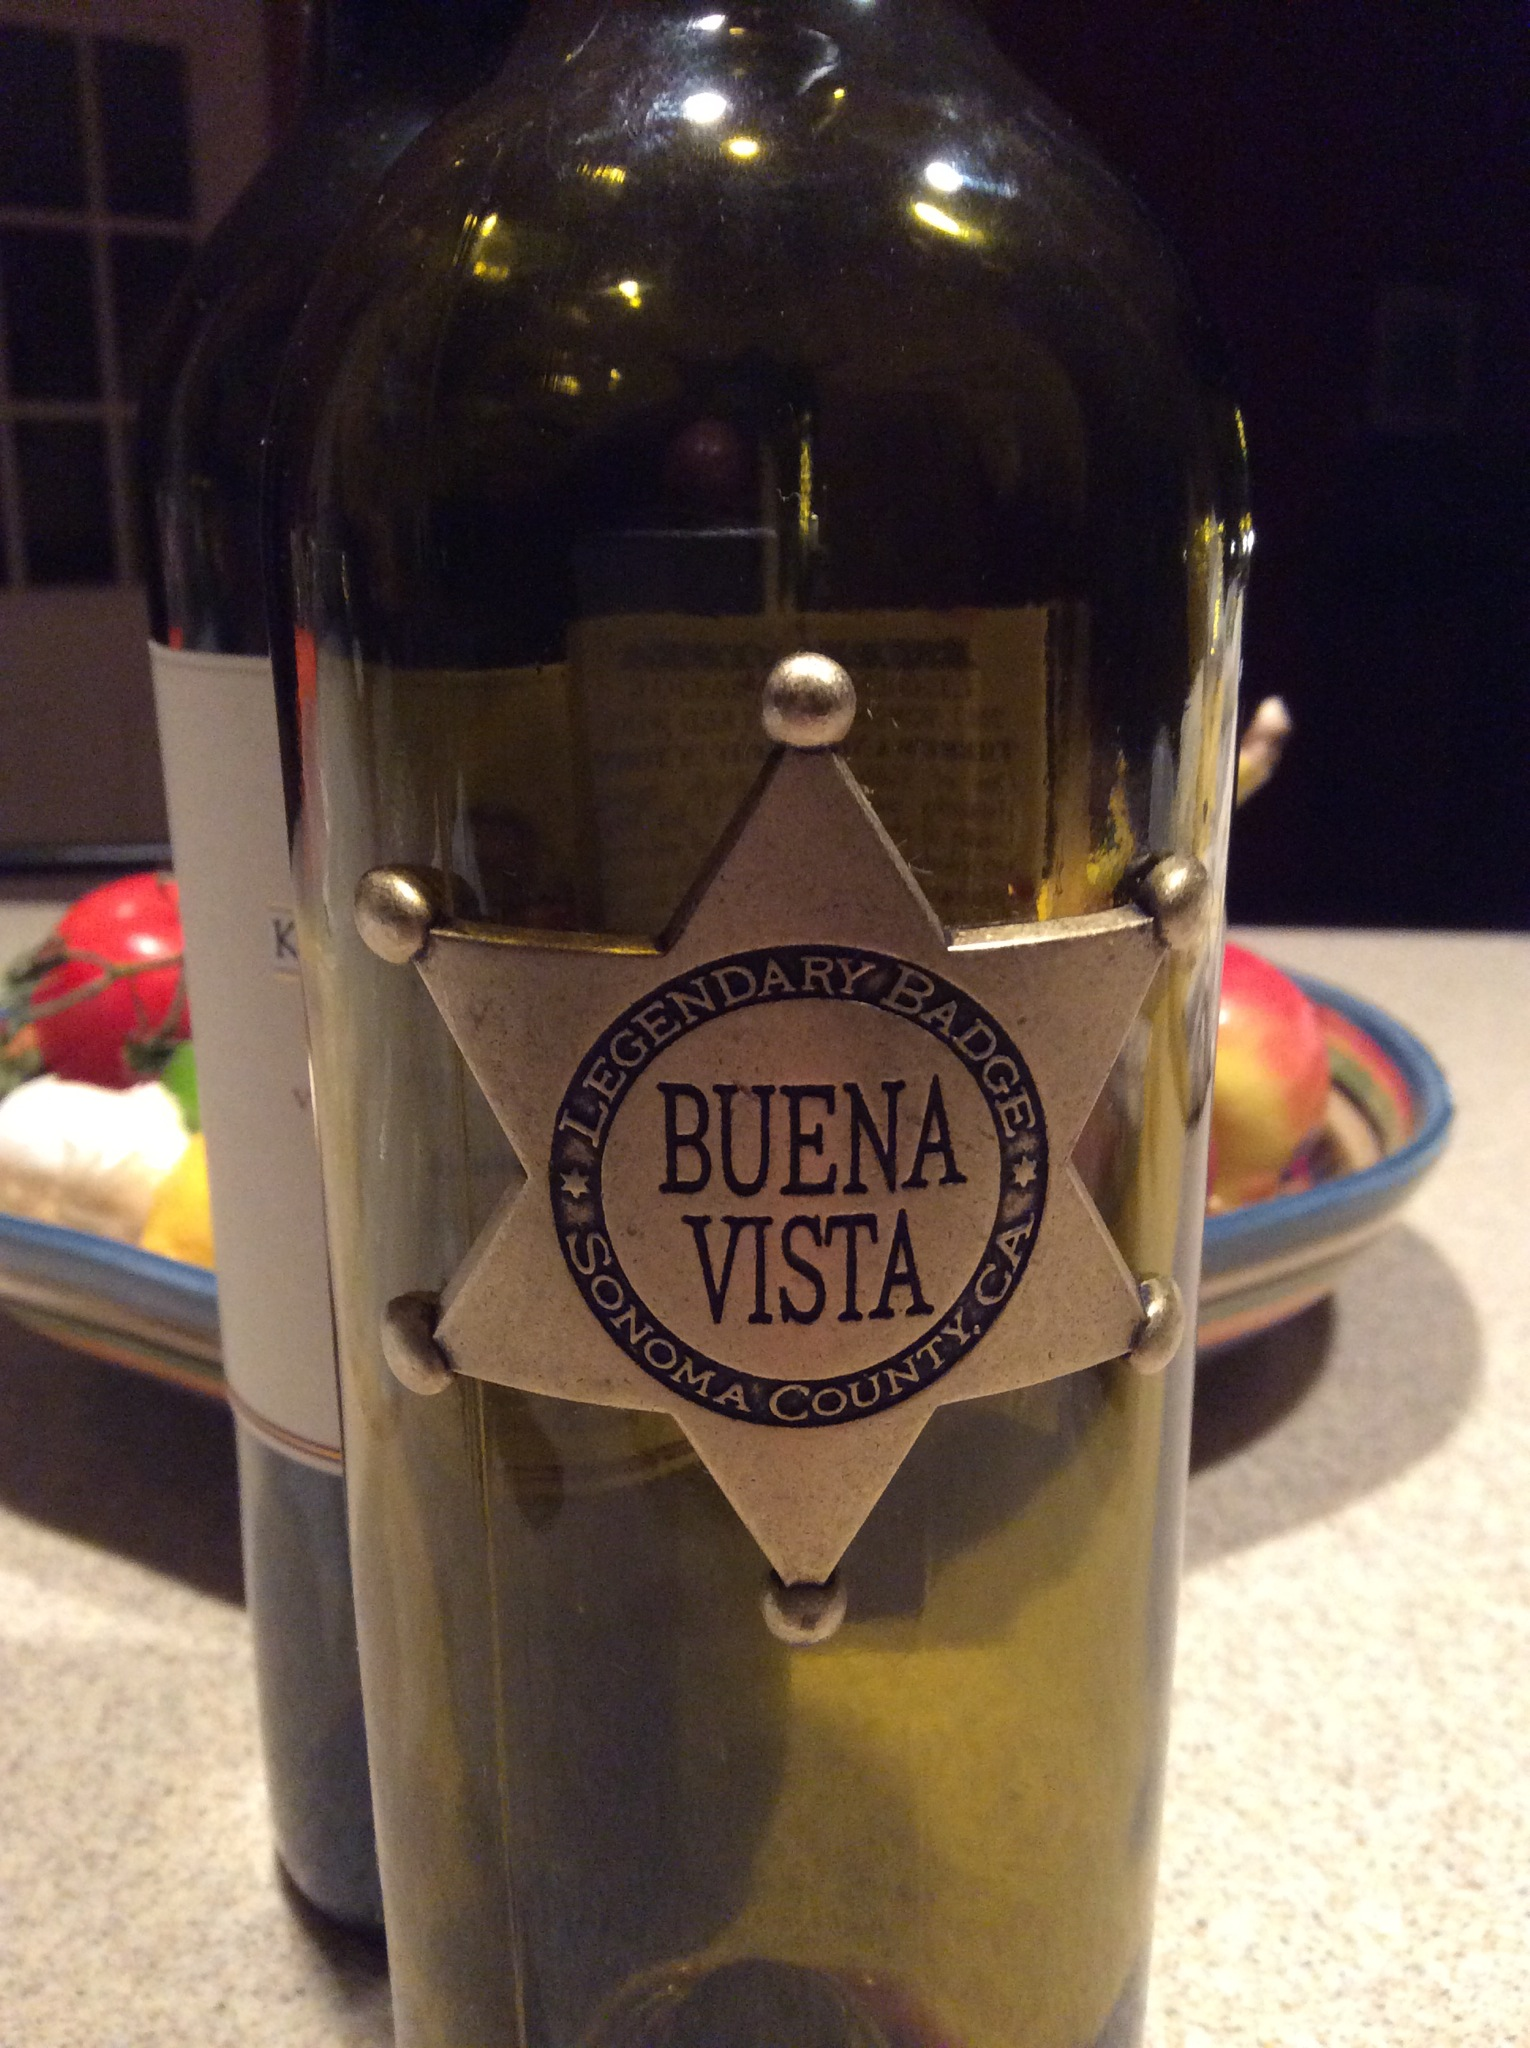 2012 Buena Vista Legendary Badge, Limited Edition, Sonoma, California, USA.